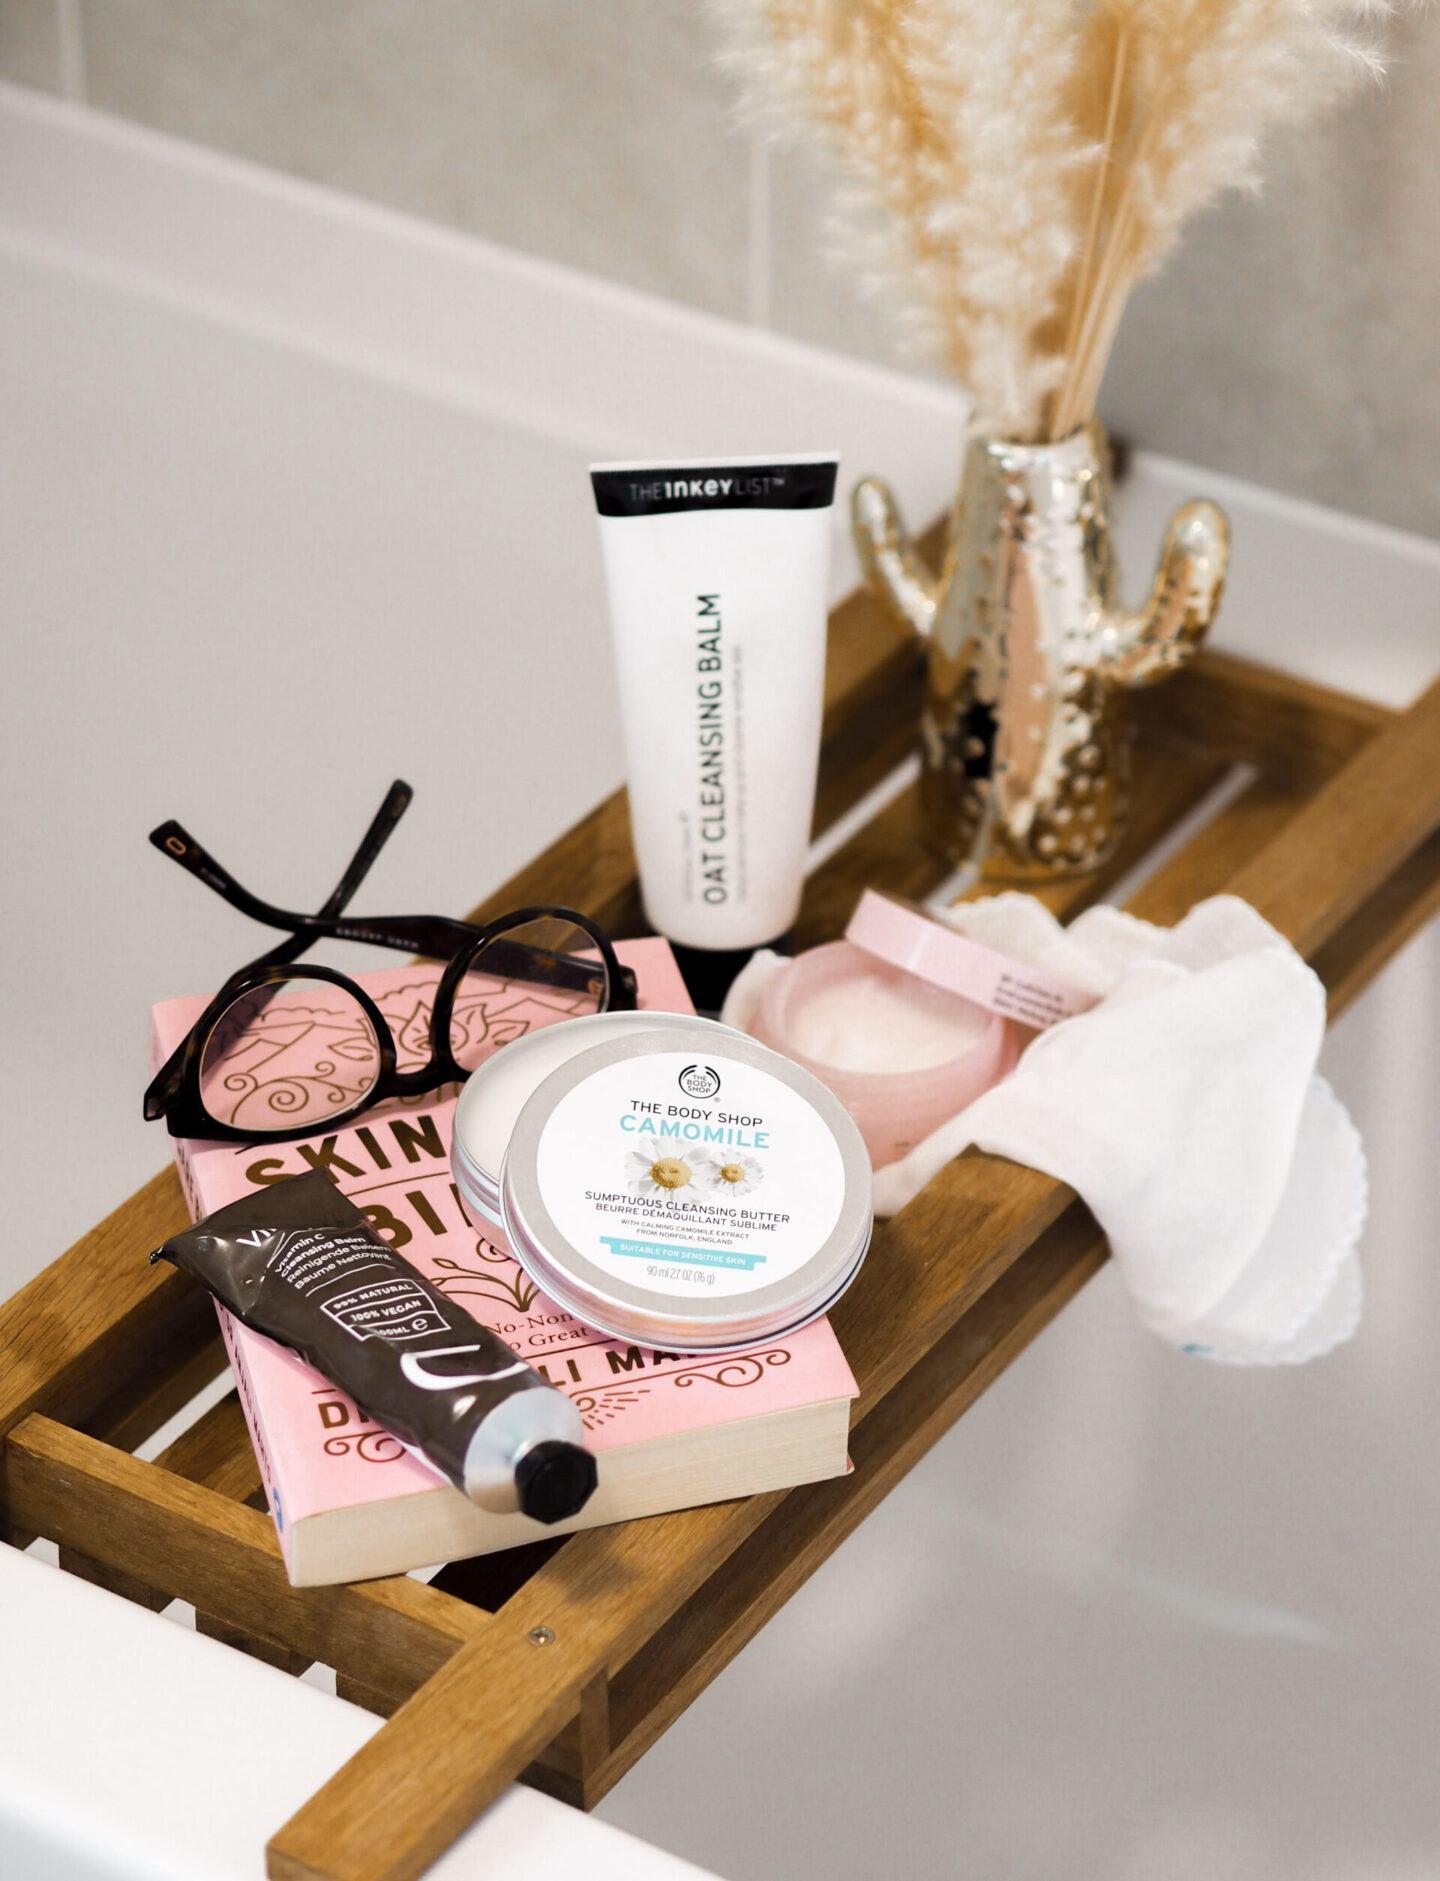 Budget Beauty Buys: 4 Of The Best Affordable Cleansing Balms For Soft, Supple & Clear Skin